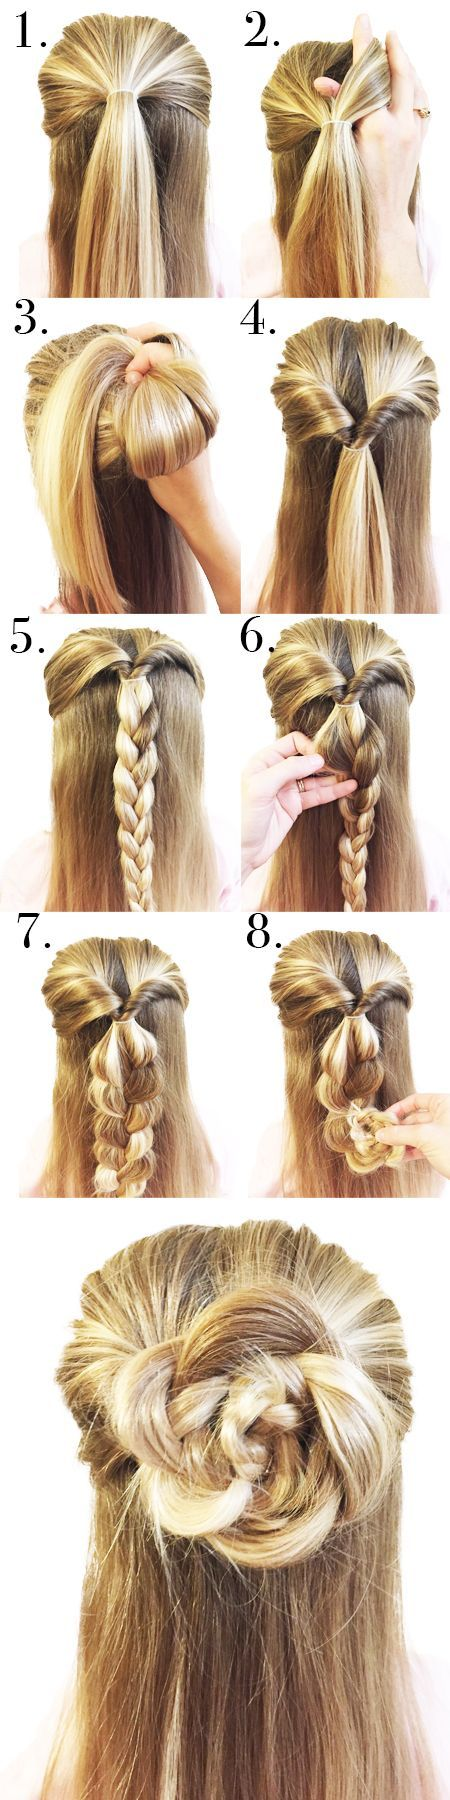 25+ best easy formal hairstyles ideas on pinterest | simple hair